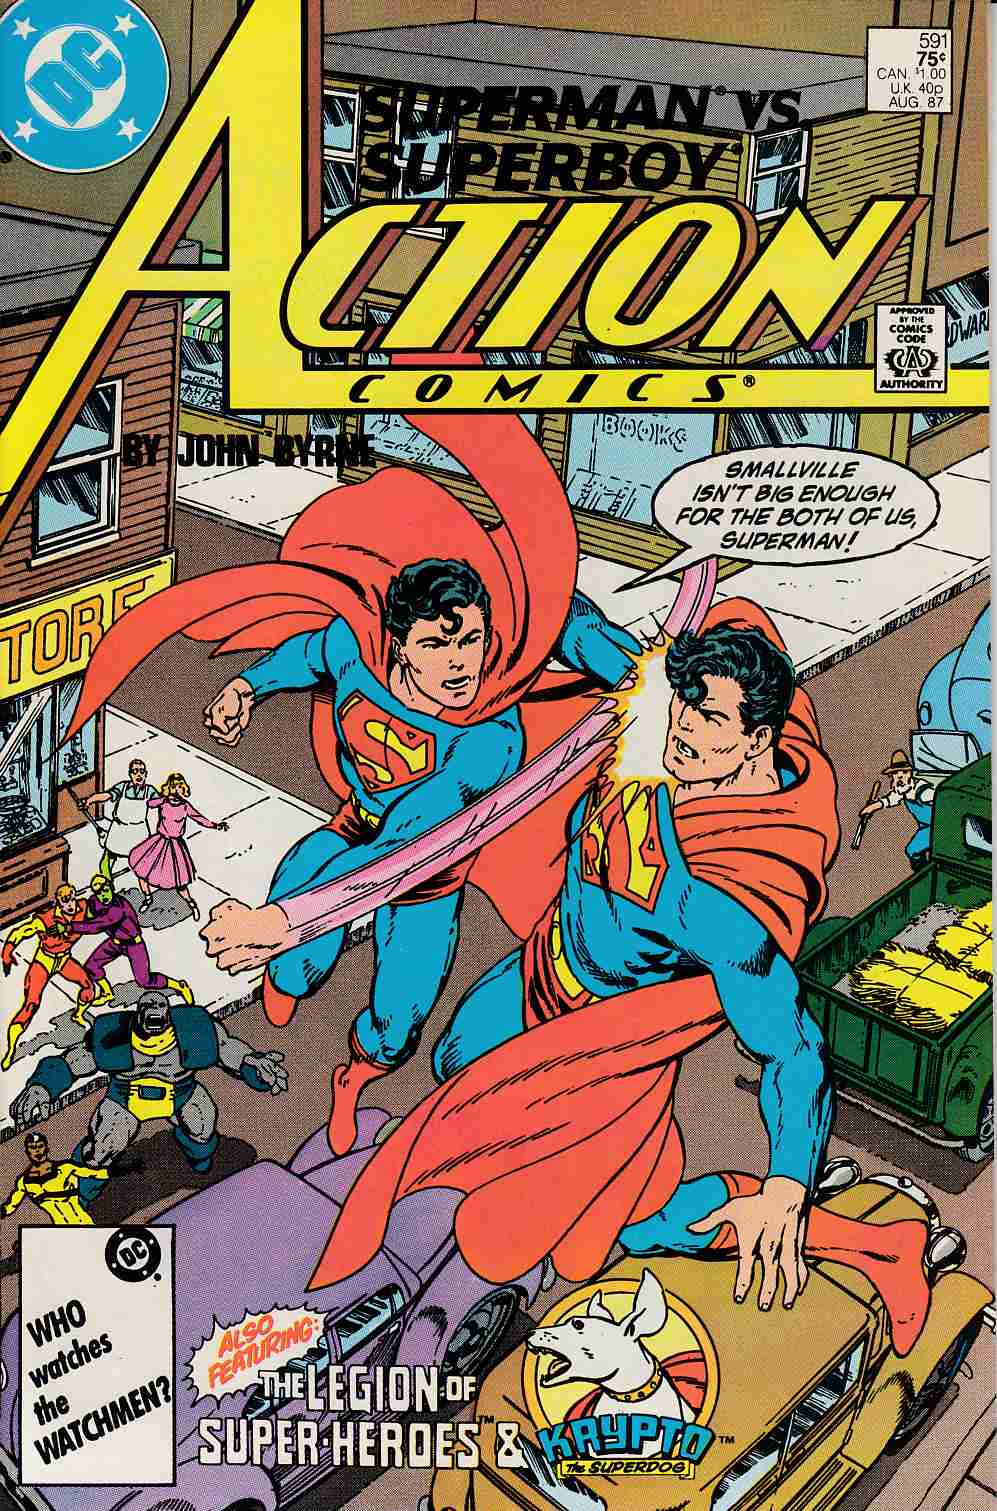 Action Comics #591 Near Mint (9.4) [DC Comic]